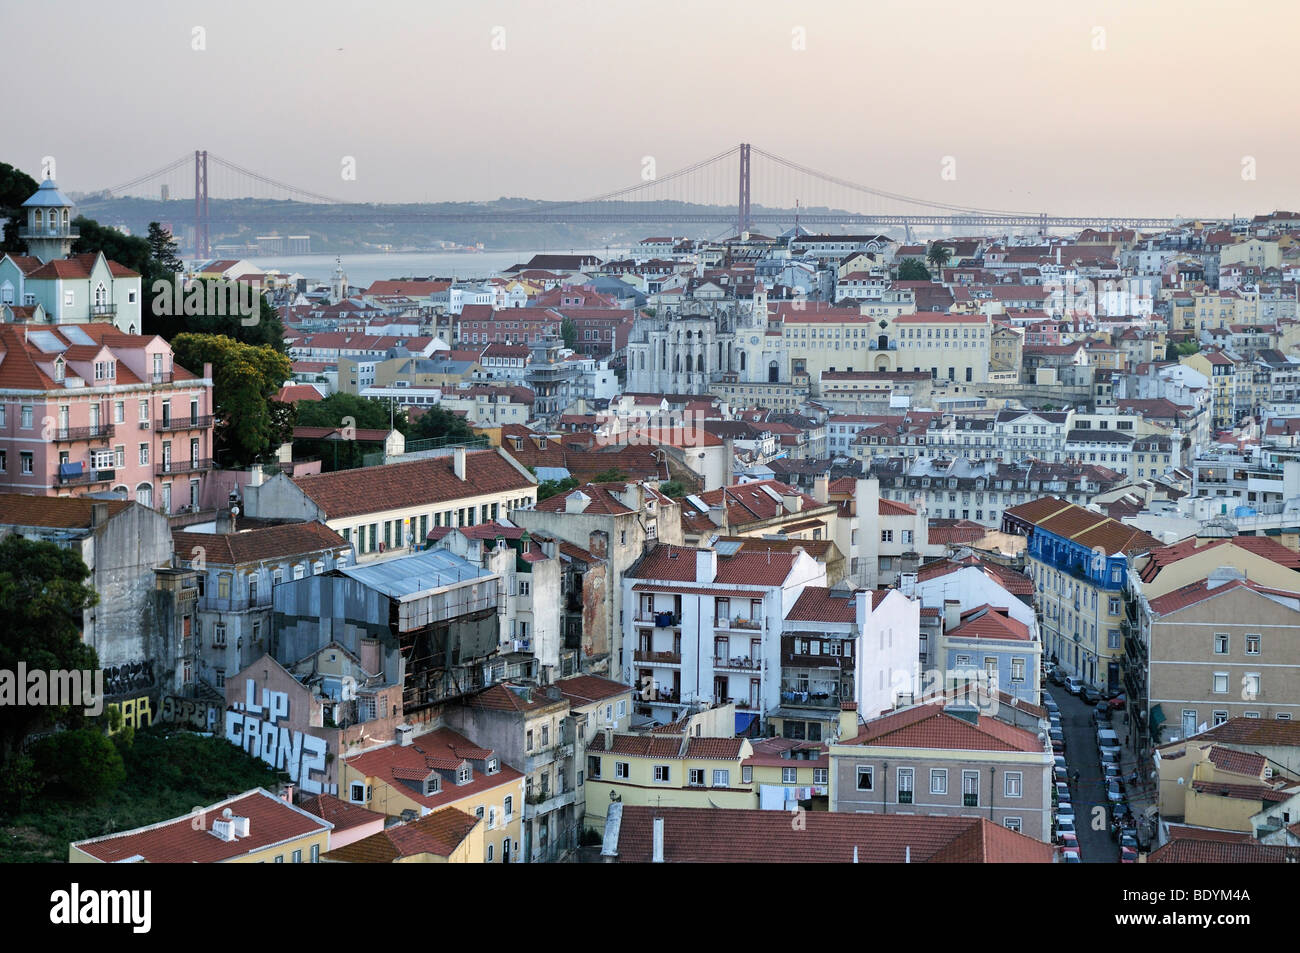 Overlooking the historic city centre of Lisbon and the Tagus River, Portugal, Europe - Stock Image